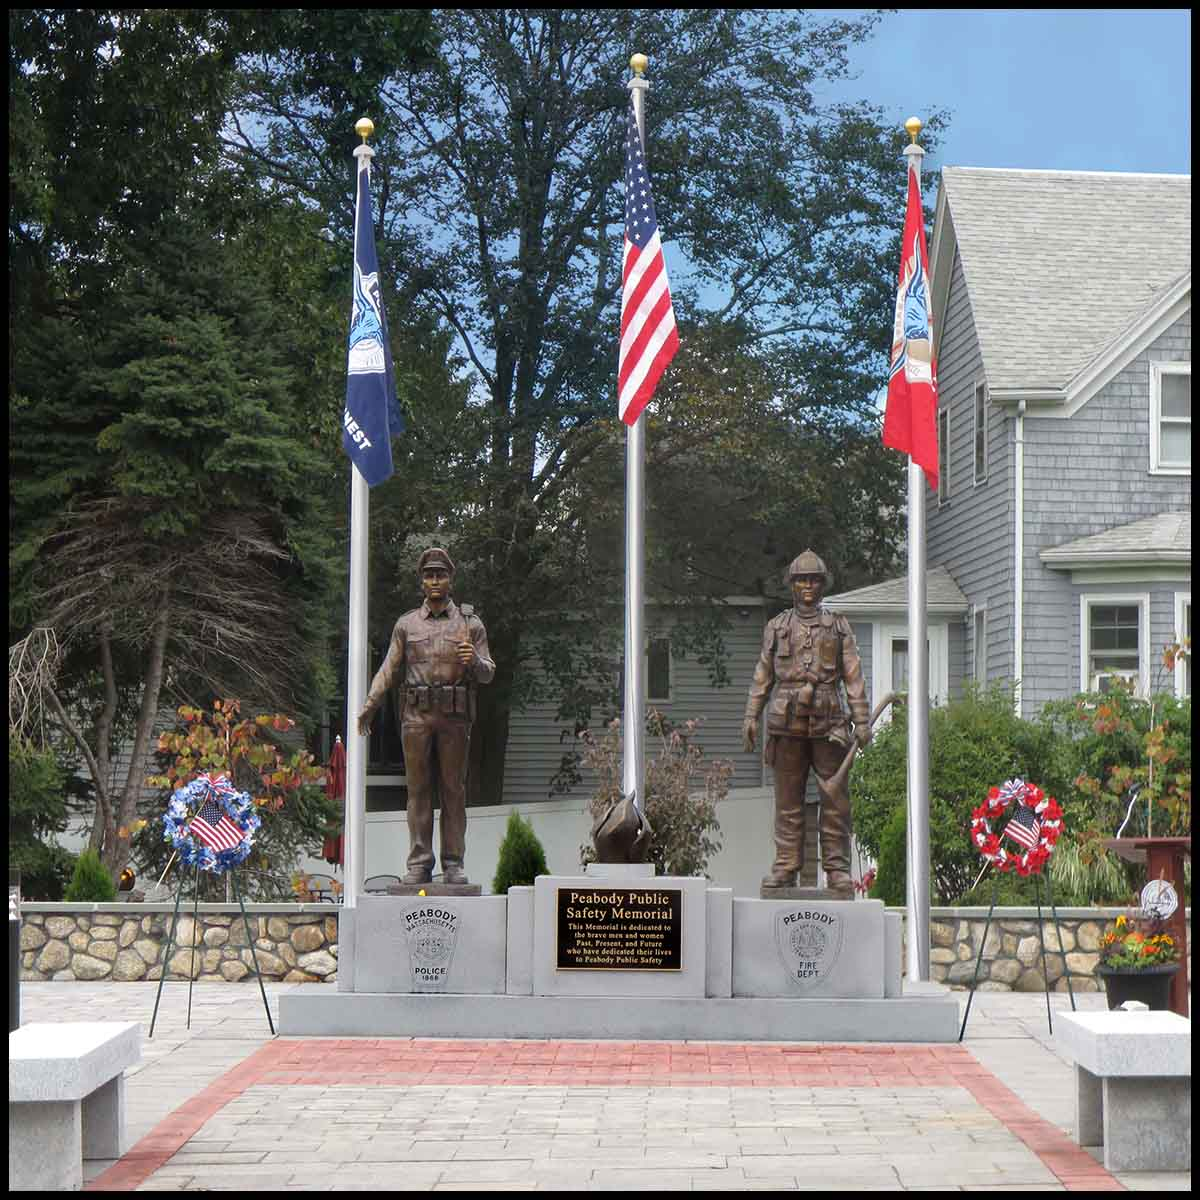 photo of outdoor memorial of bronze sculptures of a firefighter, a police officer, and an eternal flame on a large stone base with etchings and a bronze plaque in a paved site with three flags behind and trees and building behind